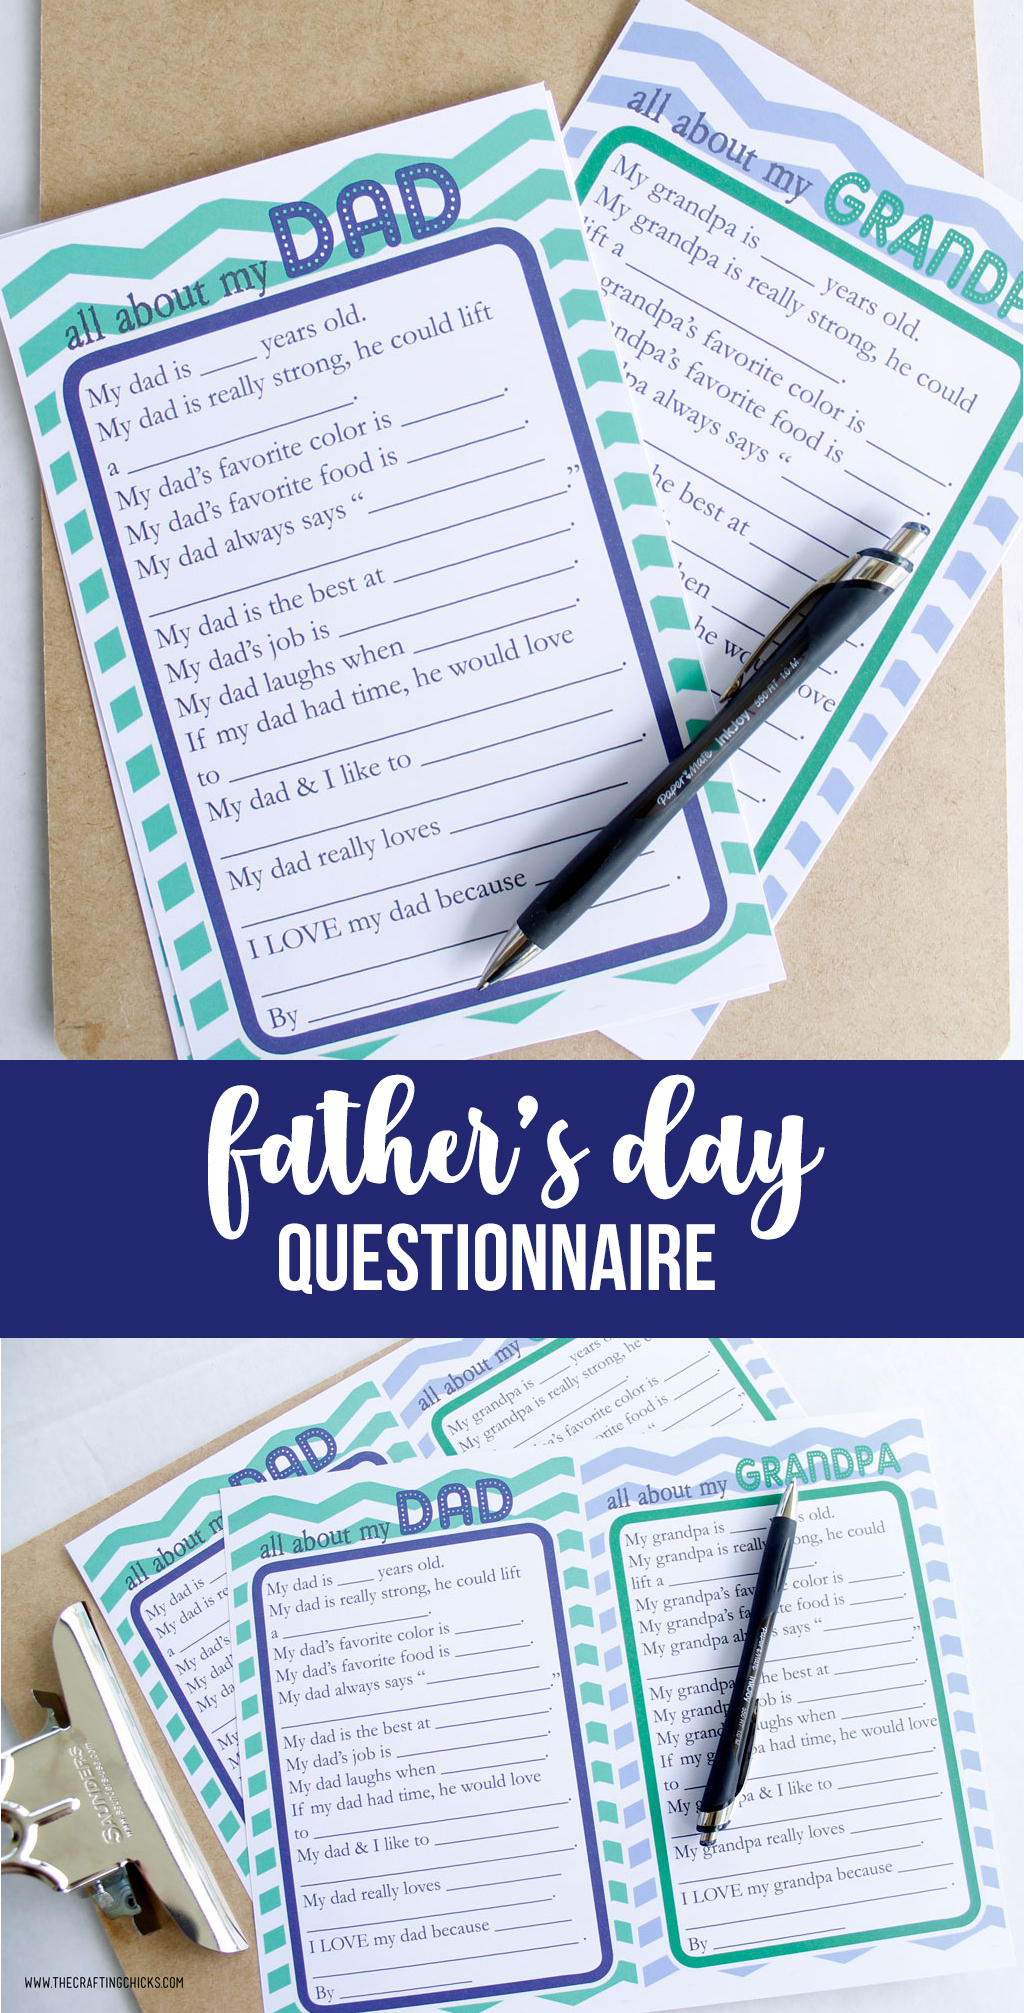 image about All About My Papa Printable named Fathers Working day Questionnaire Totally free Printable - The Composing